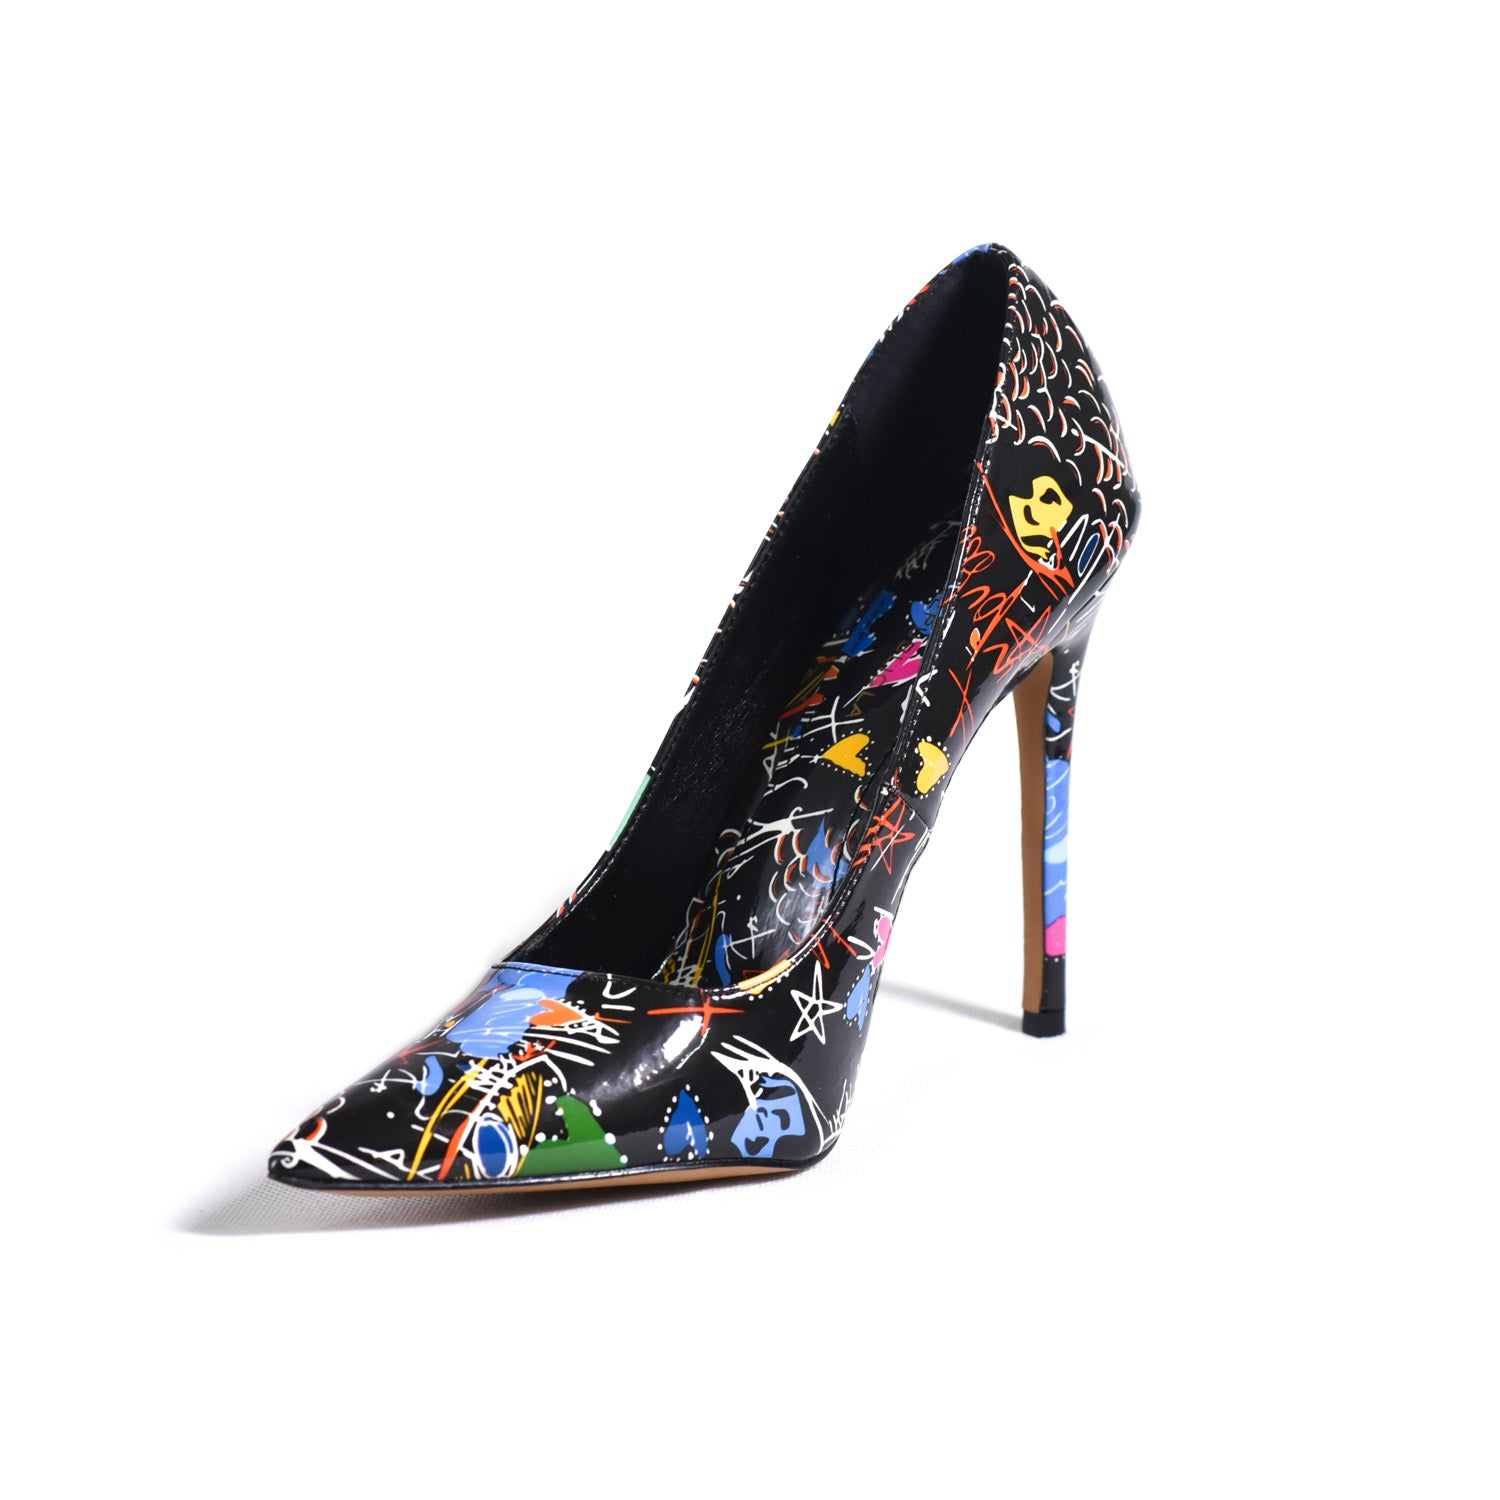 High heel and multiple colors shoe